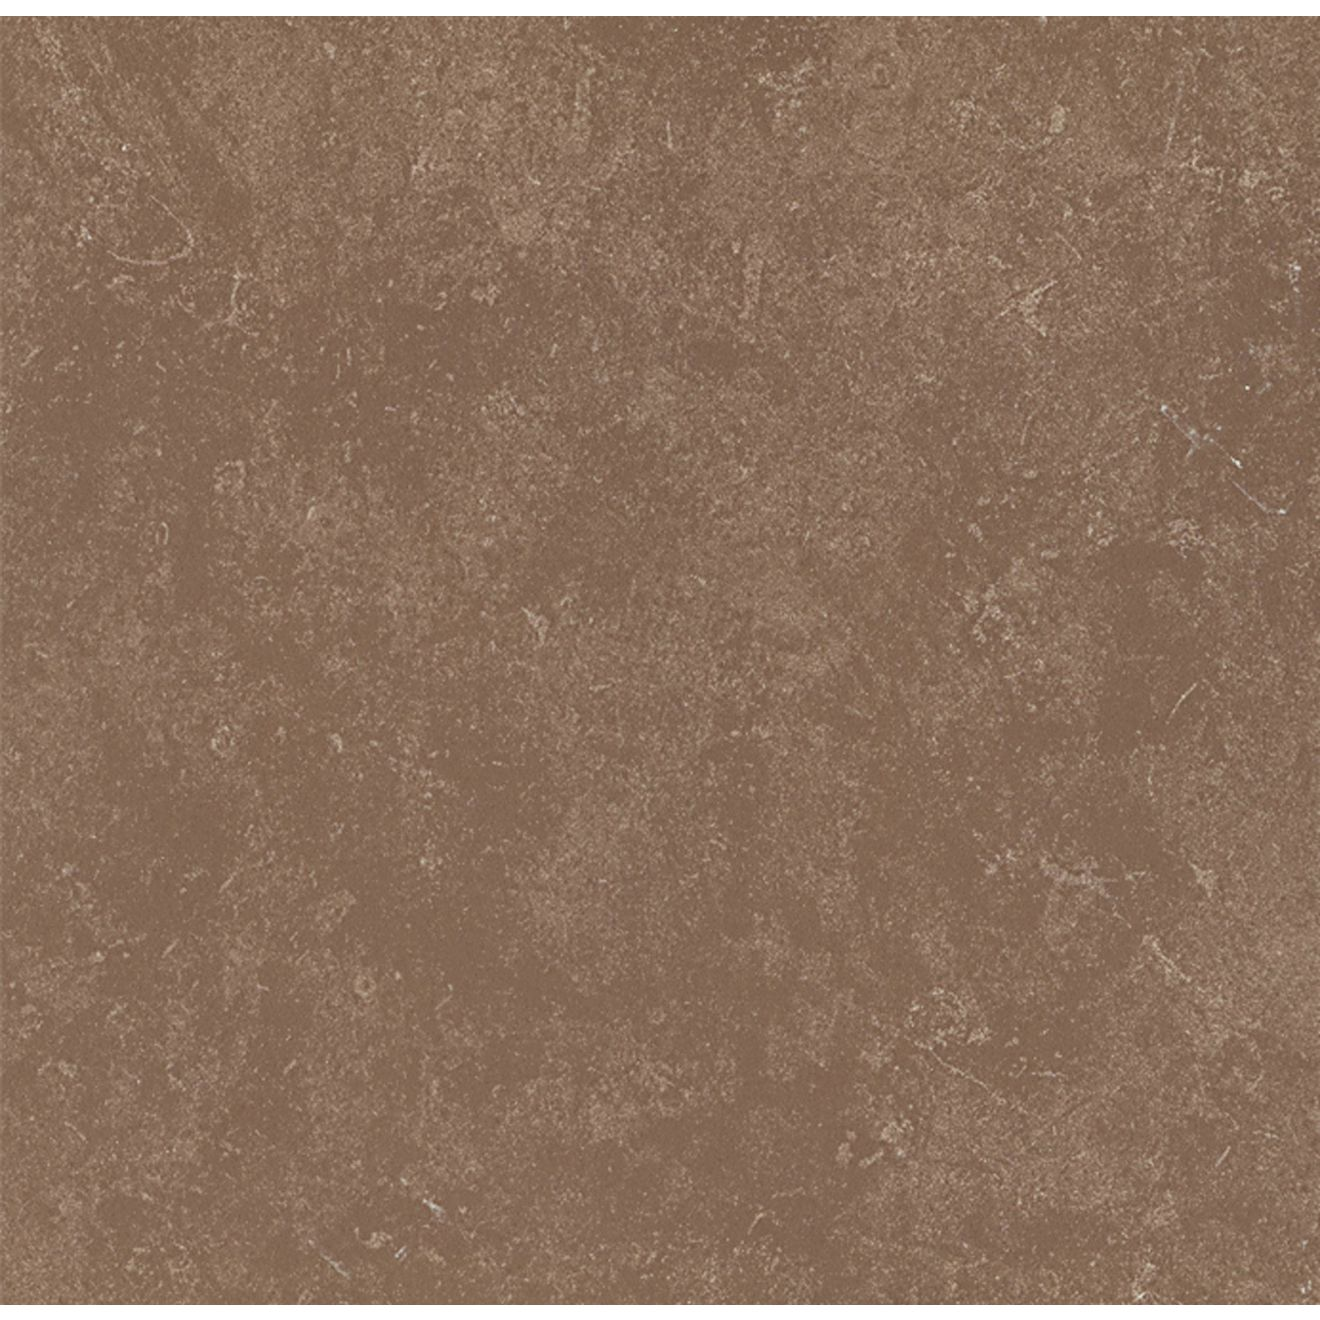 "Ararat 12""x12"" Porcelain Floor & Wall Tile in Mocha"